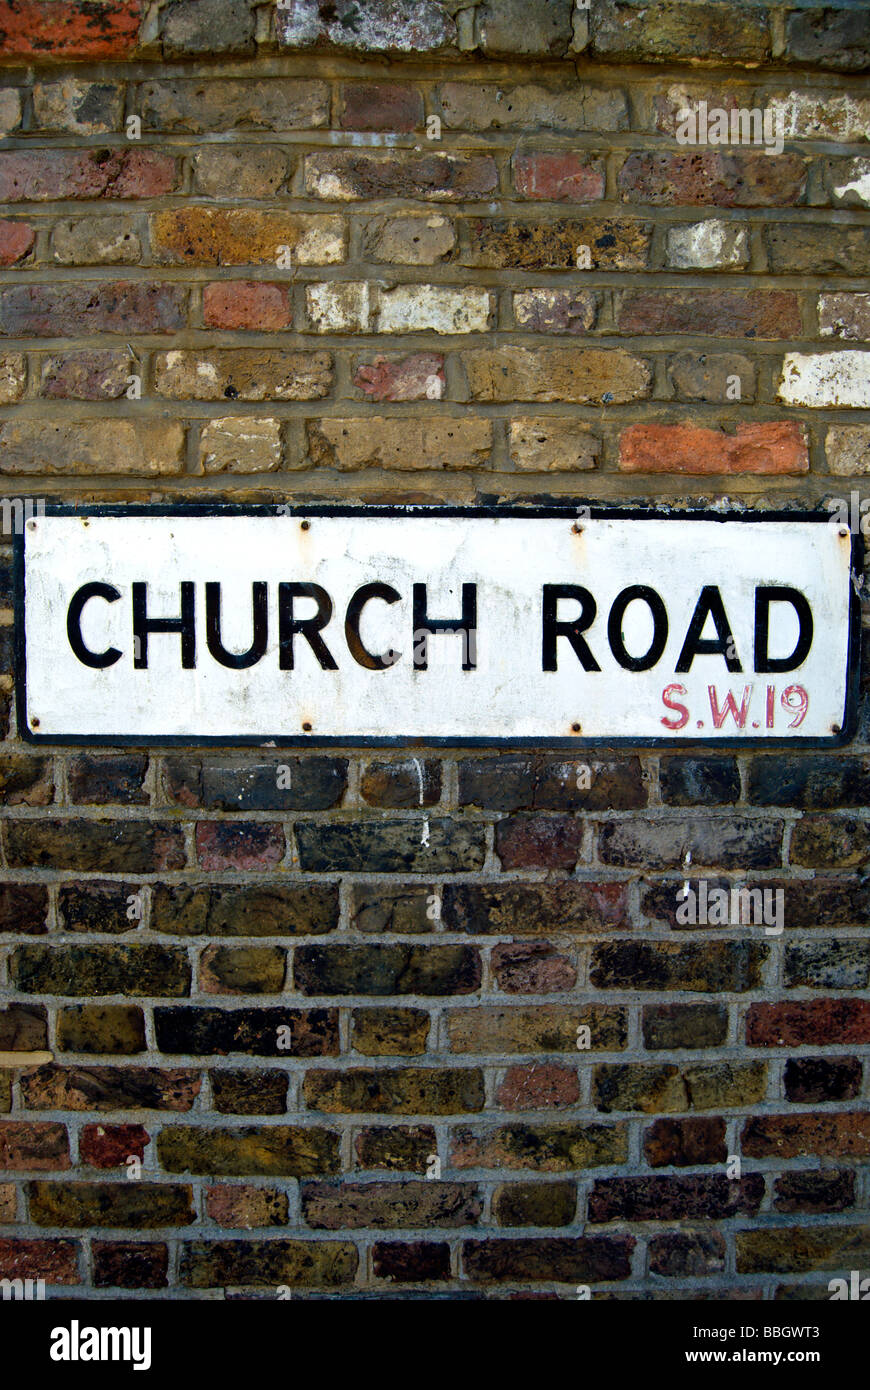 street name sign for church road, wimbledon, with sw19 london postcode - Stock Image